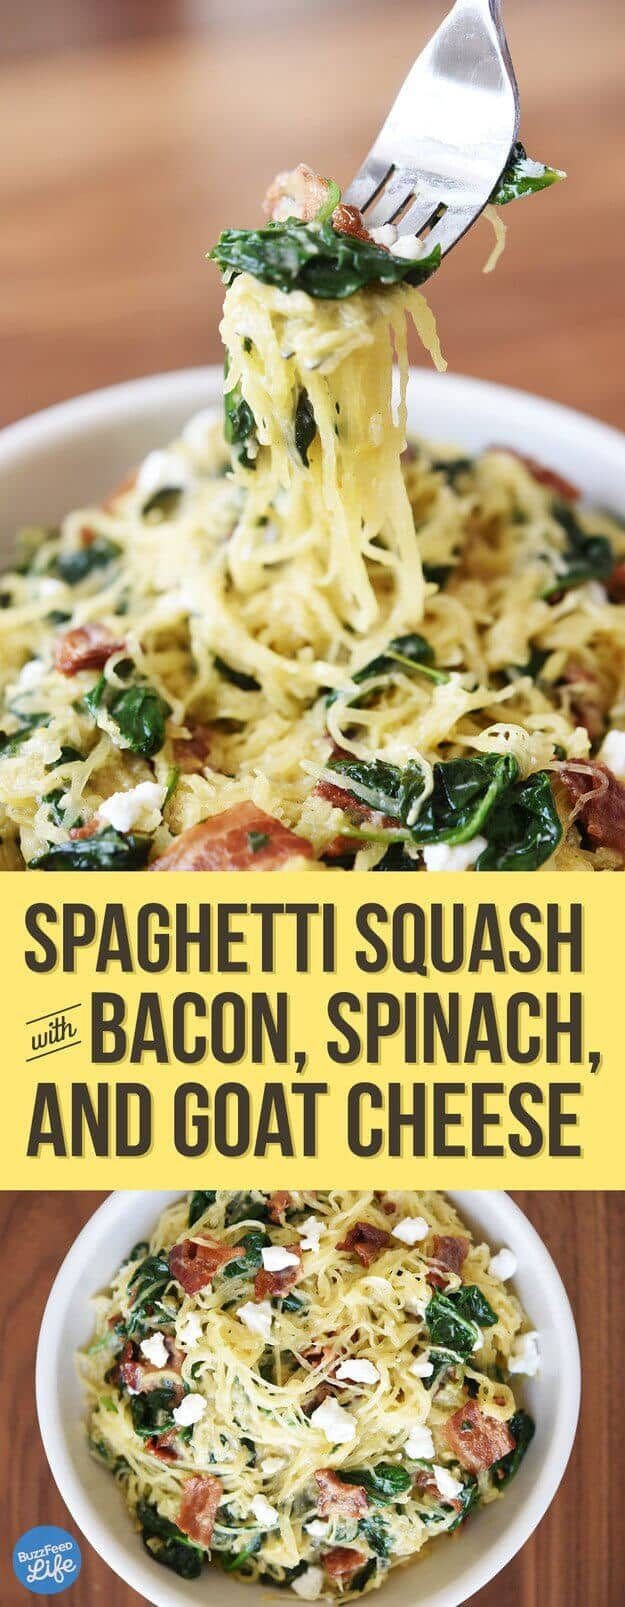 Spaghetti Squash and Bacon Dish